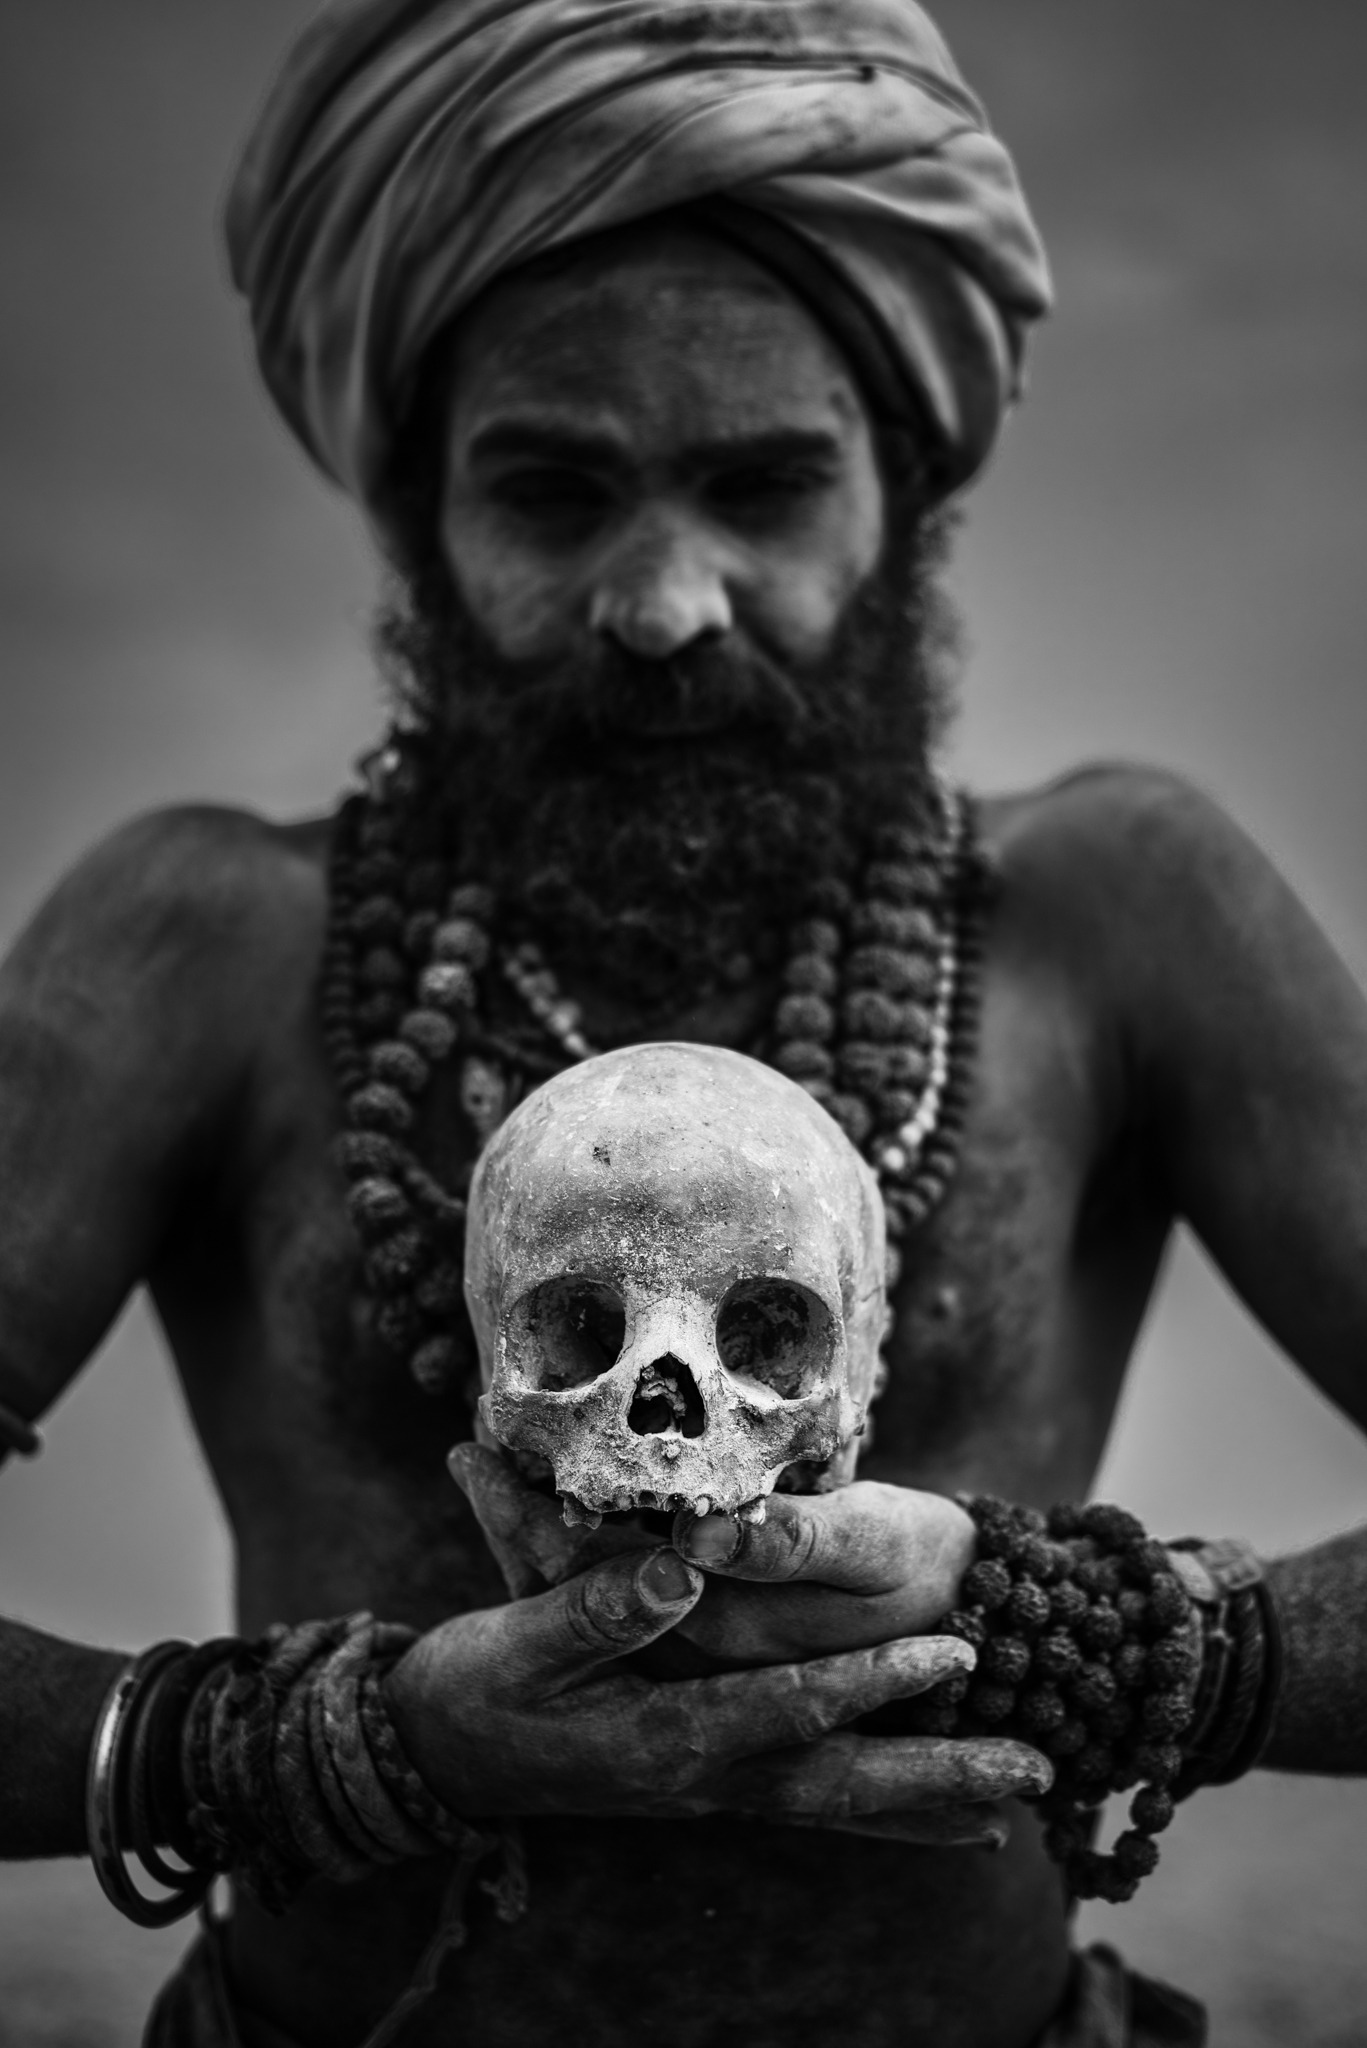 Aghori with human body